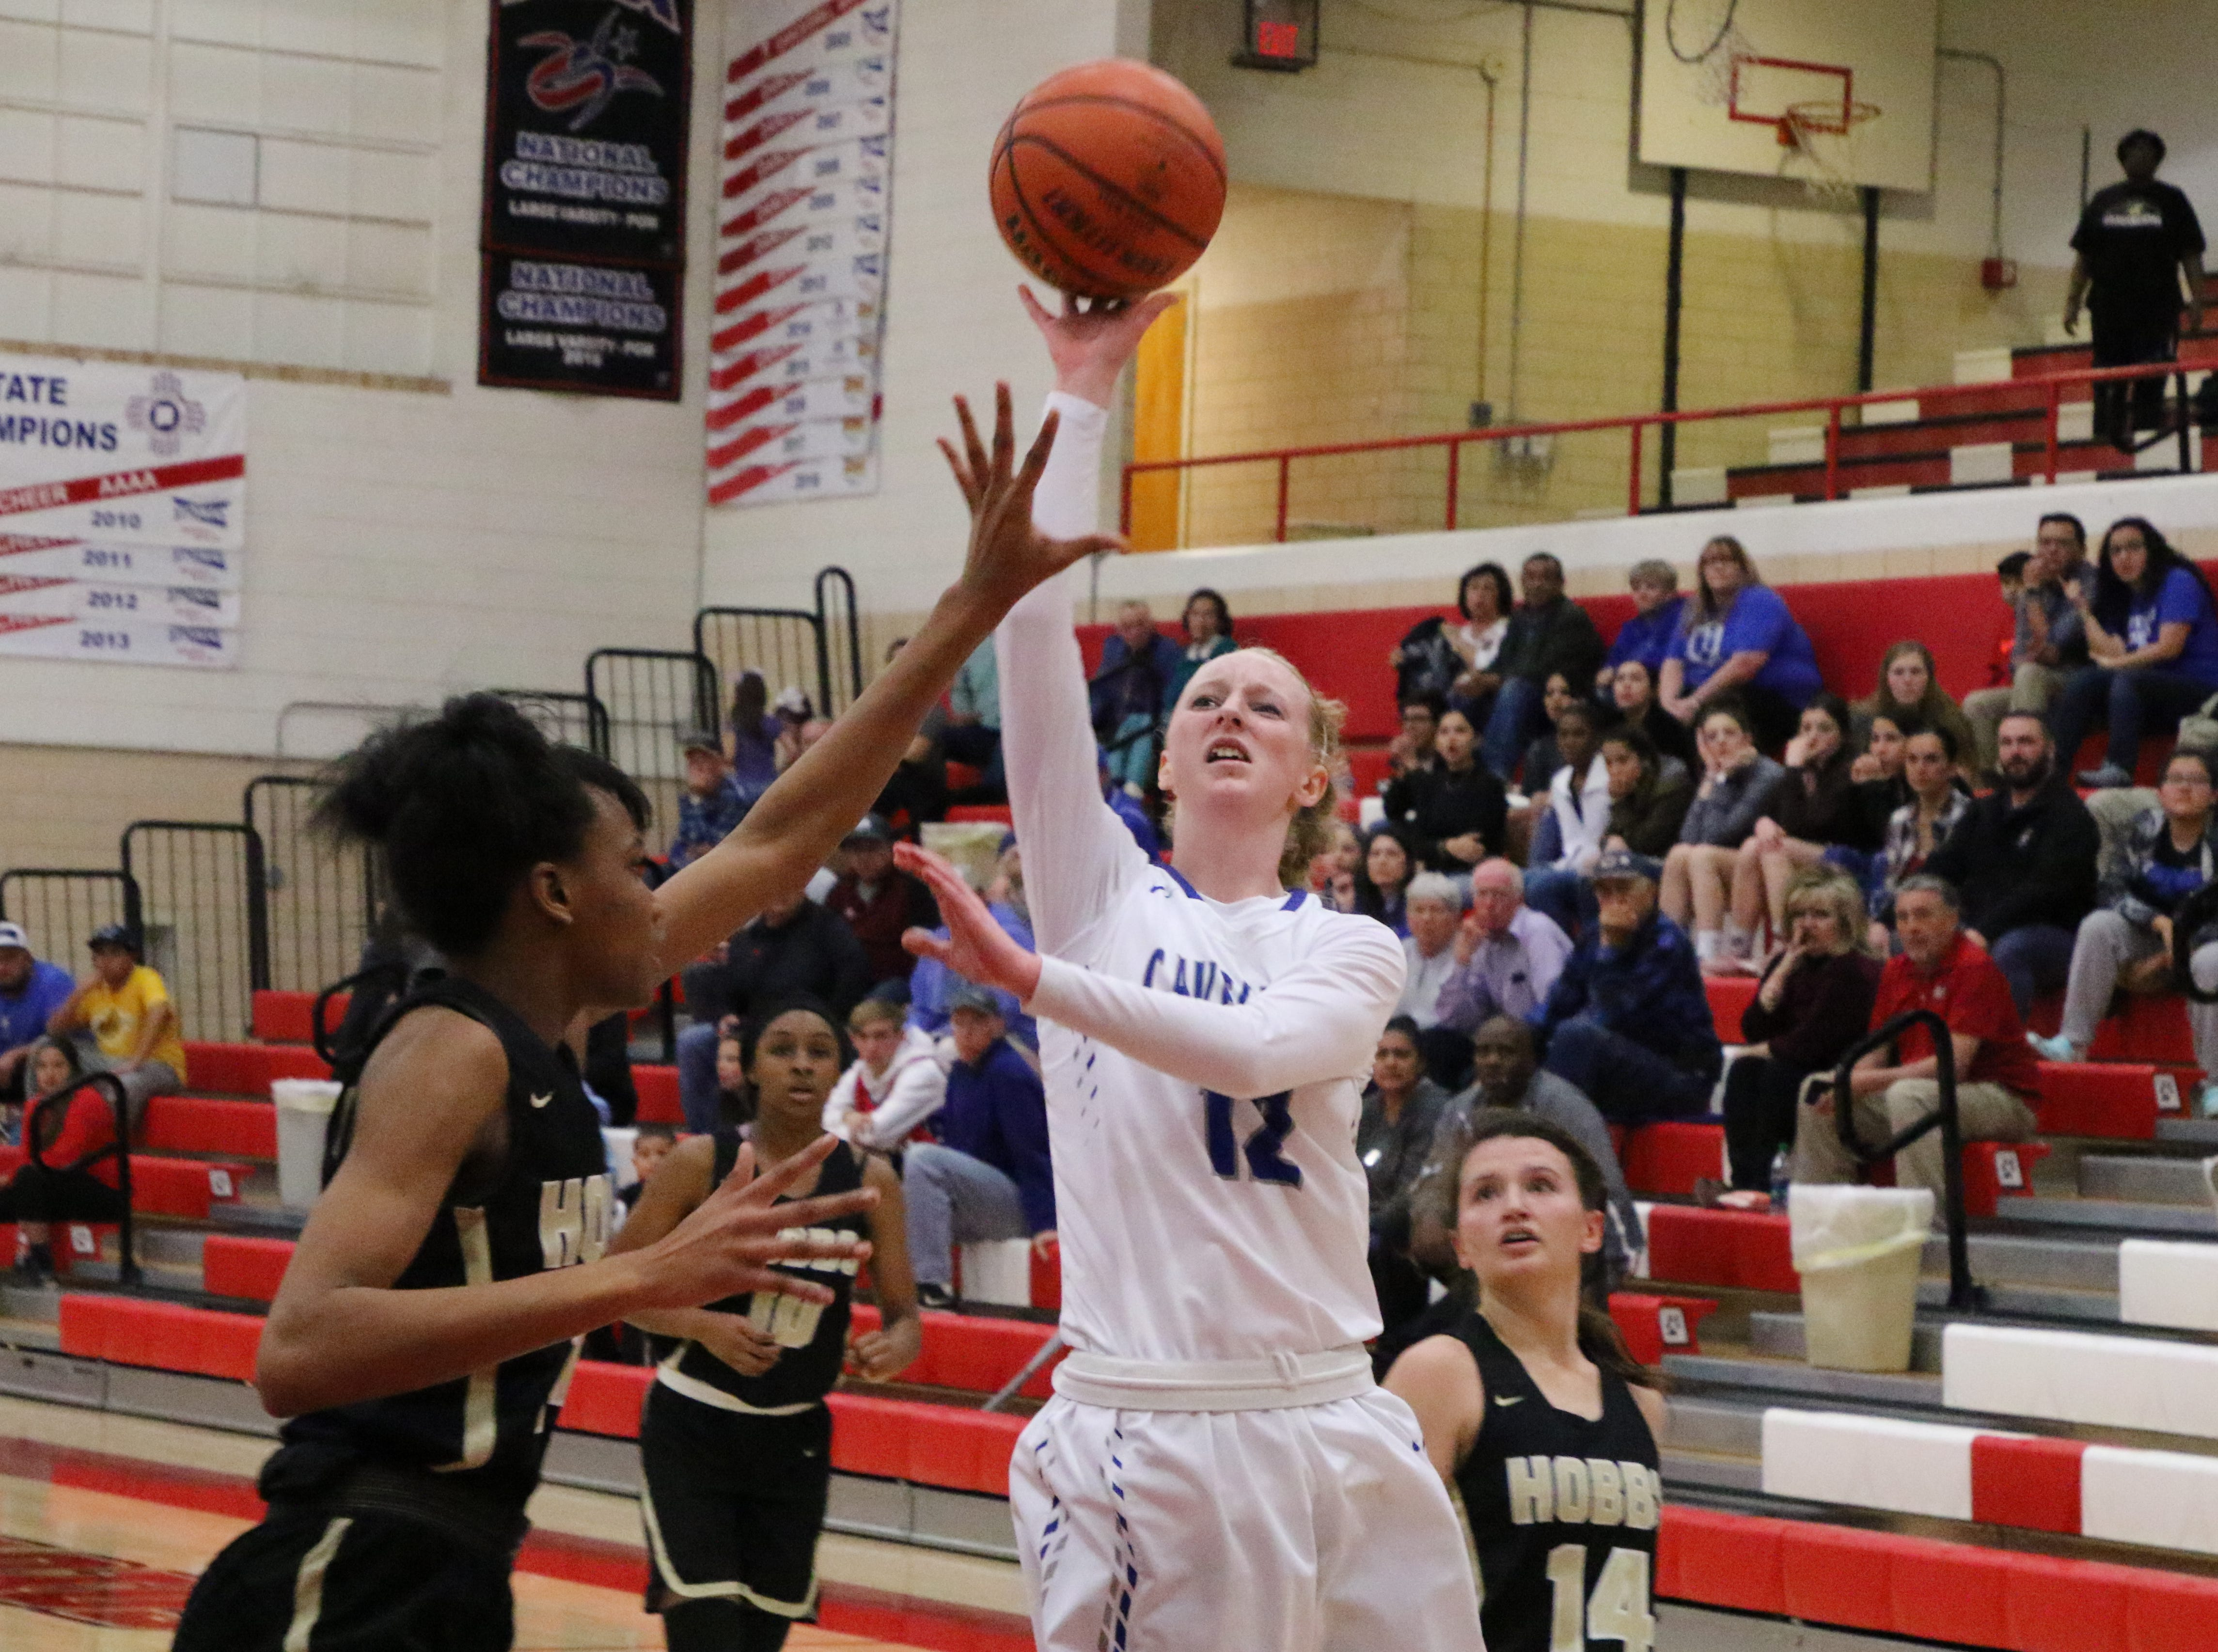 Carsyn Boswell gets off a contested shot in the fourth quarter of Monday's one-game playoff to determine the No. 1 team in Class 4-5A.